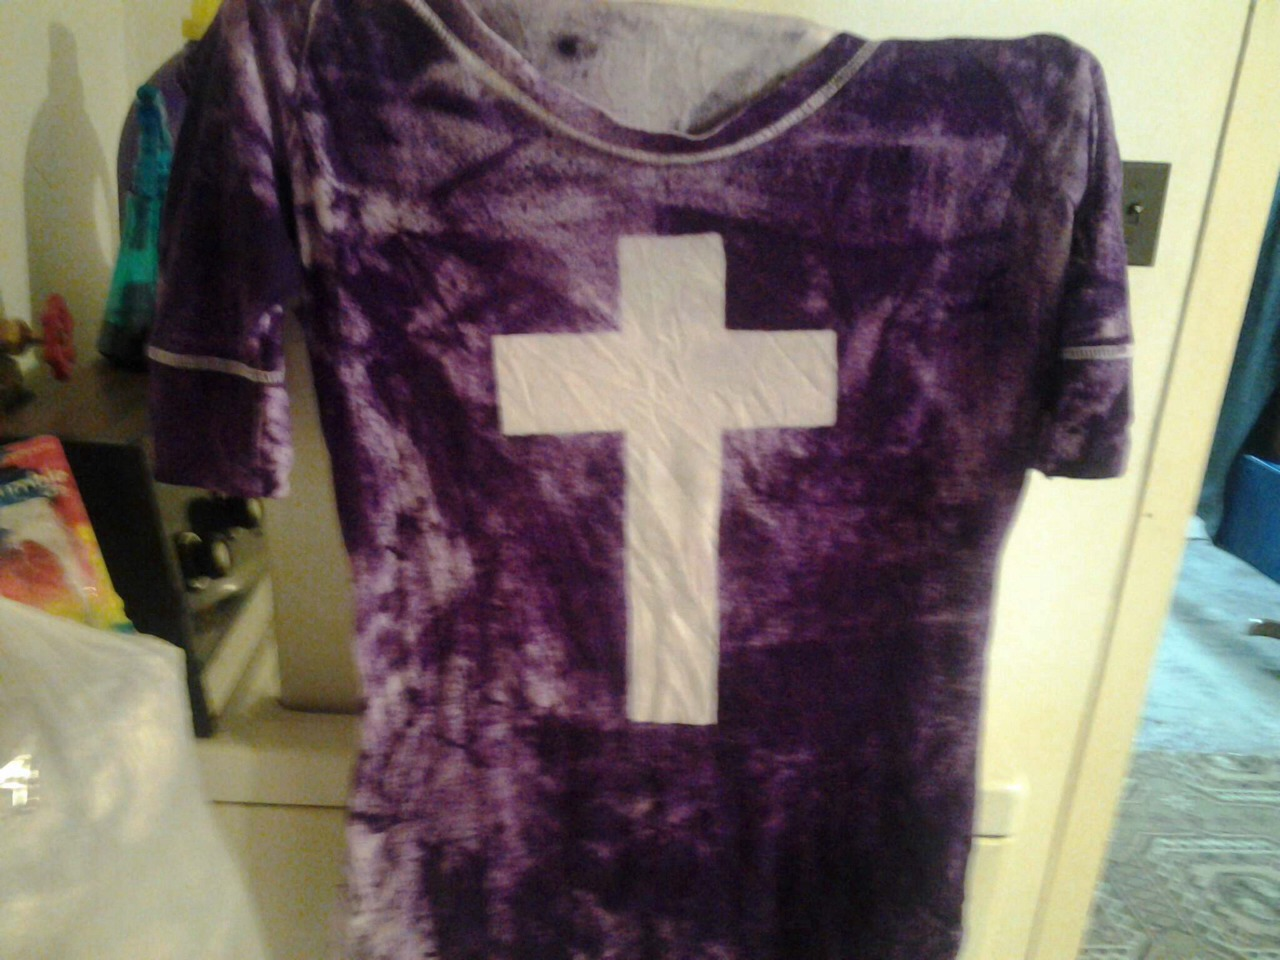 Put tape on a white shirt in the shape of a cross I used clear masking tape then put card board under the cross then mix dye in a spray bottle ( I got my spray bottles from the dollar stores) and spray then put gloves on and scrunch the fabric until u reach desired look Let sit 24 hours wash n dry